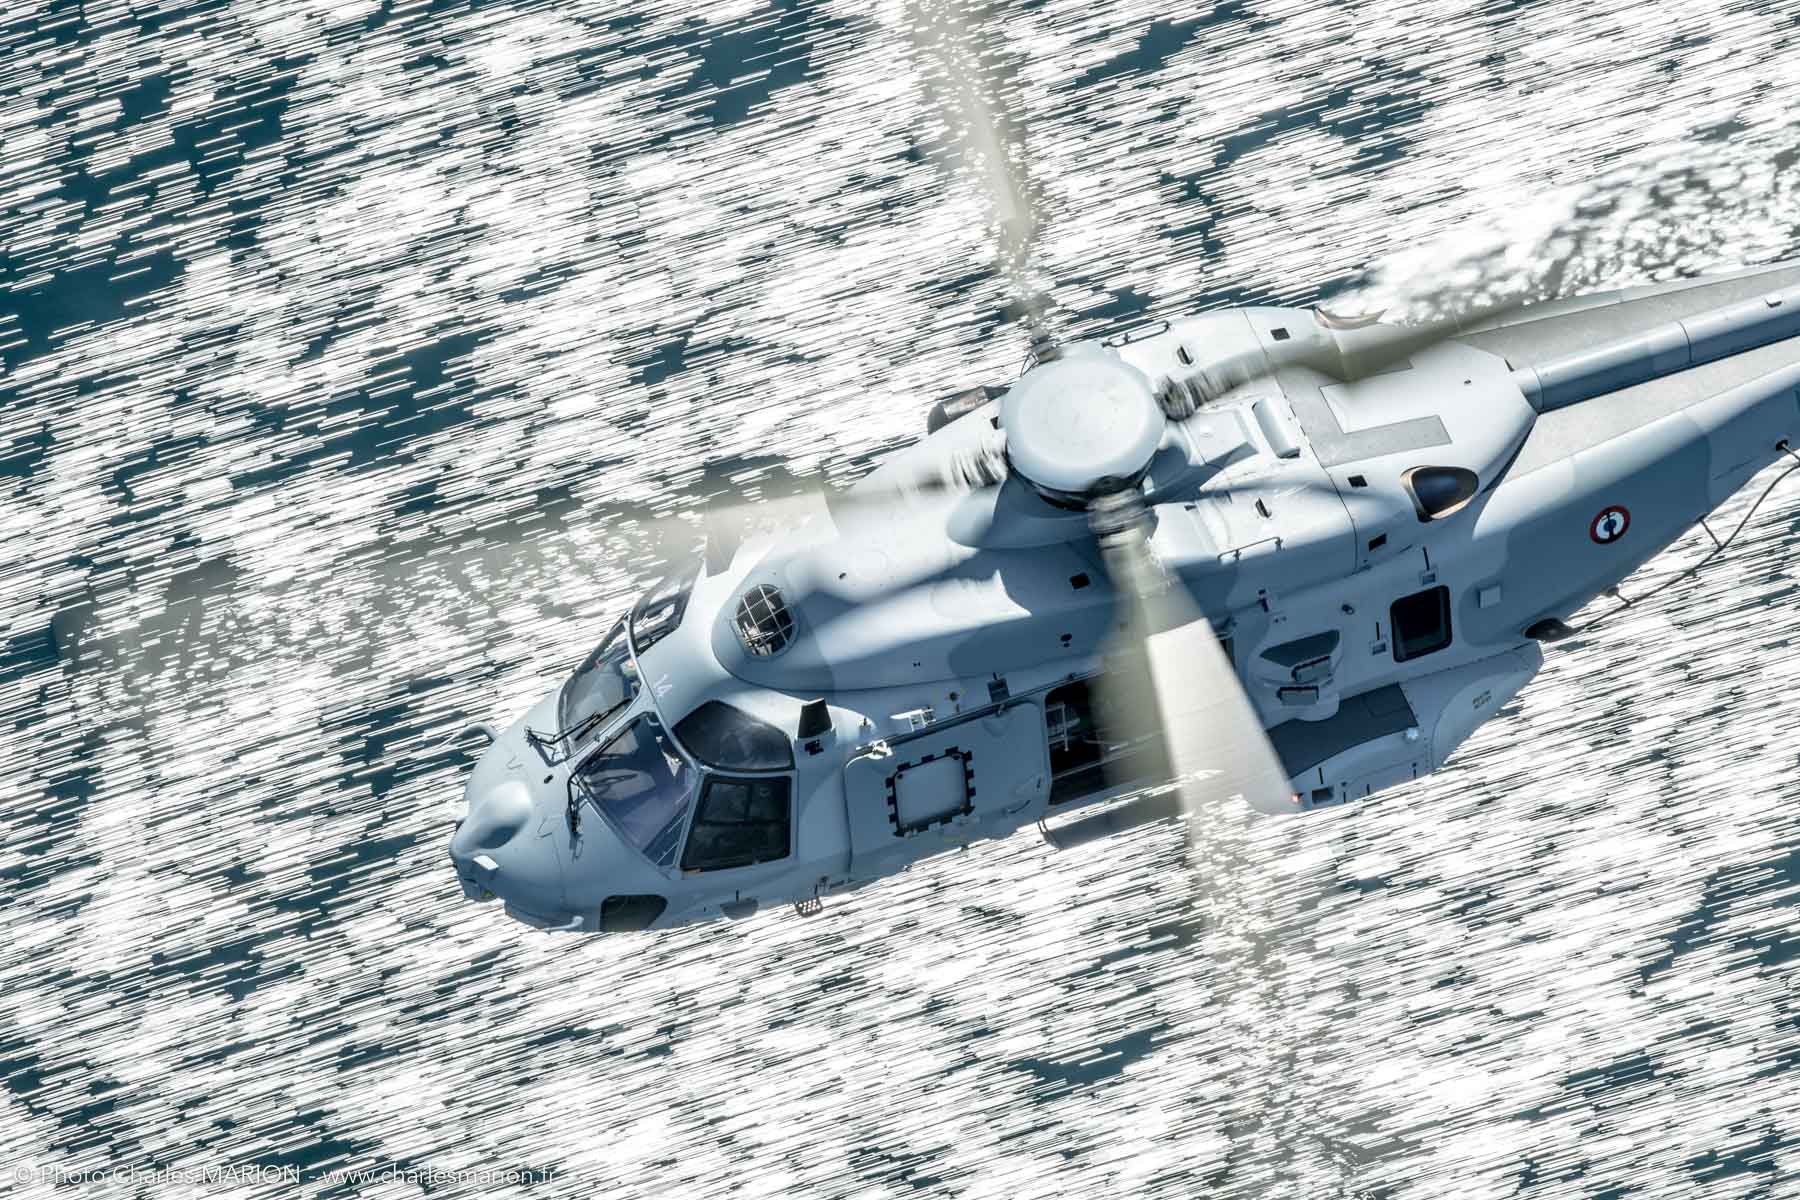 A NHIndustries NH90 flies over the Iroise Sea toward Crozon, France. Photo submitted by Charles Marion